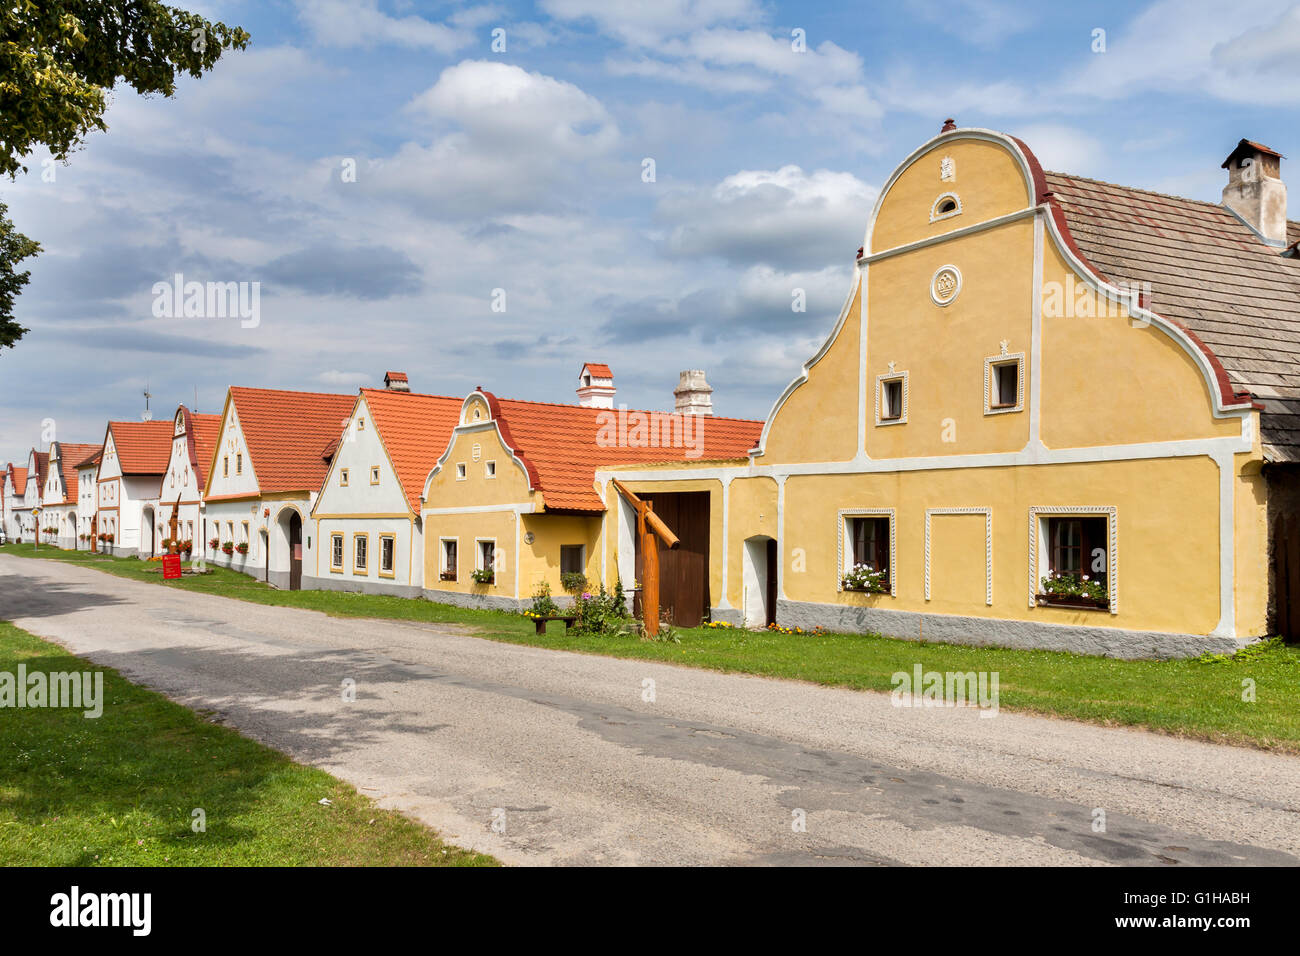 Czech Republic - UNESCO village Holasovice in South Bohemia - Stock Image